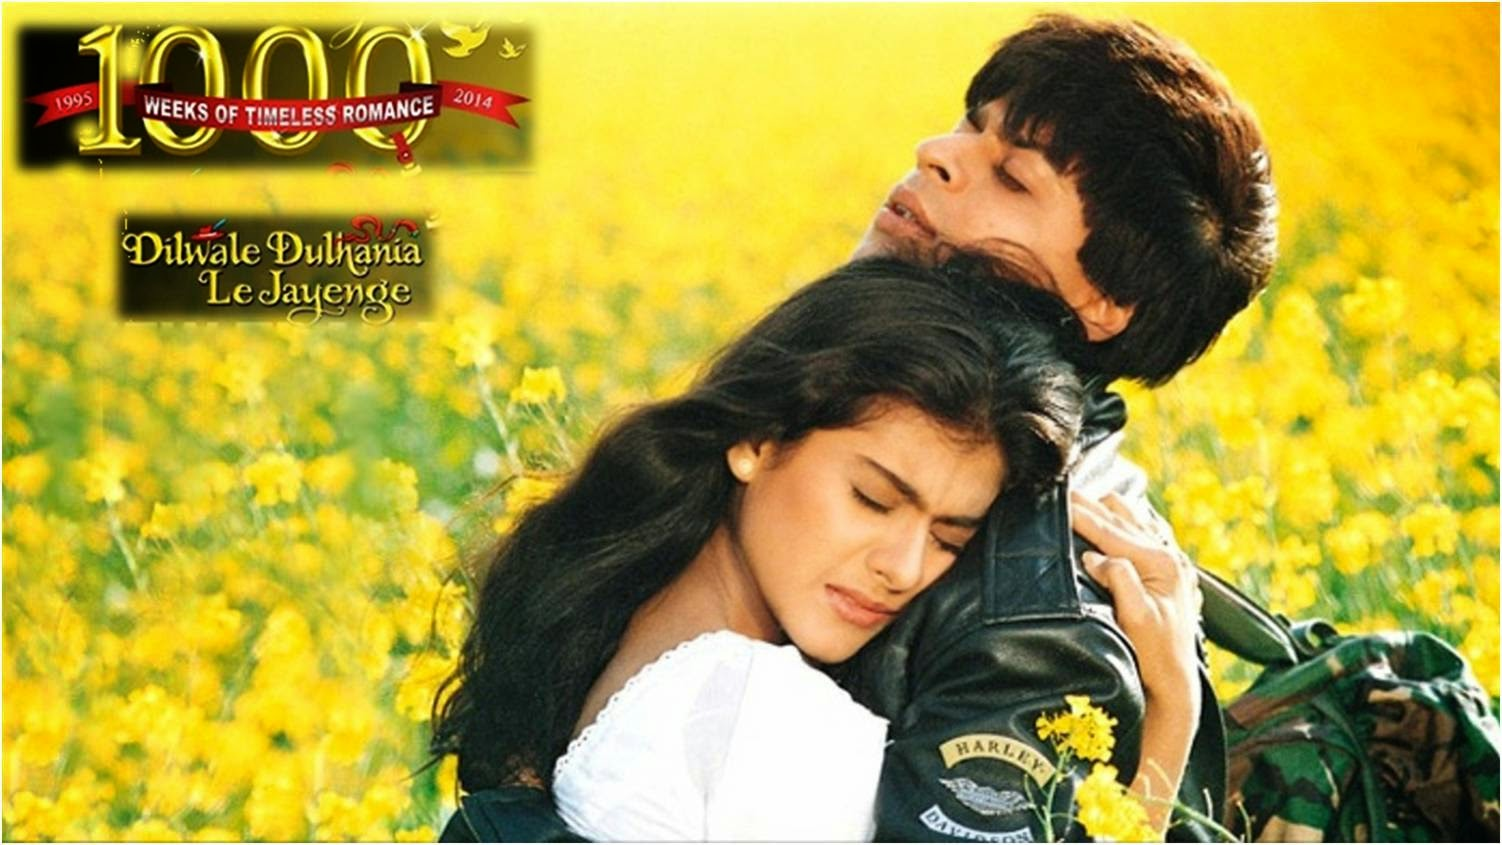 DDLJ: Romantic love story of Shahrukh Khan and Kajol in Dilwale Dulhaniya Le Jayenge